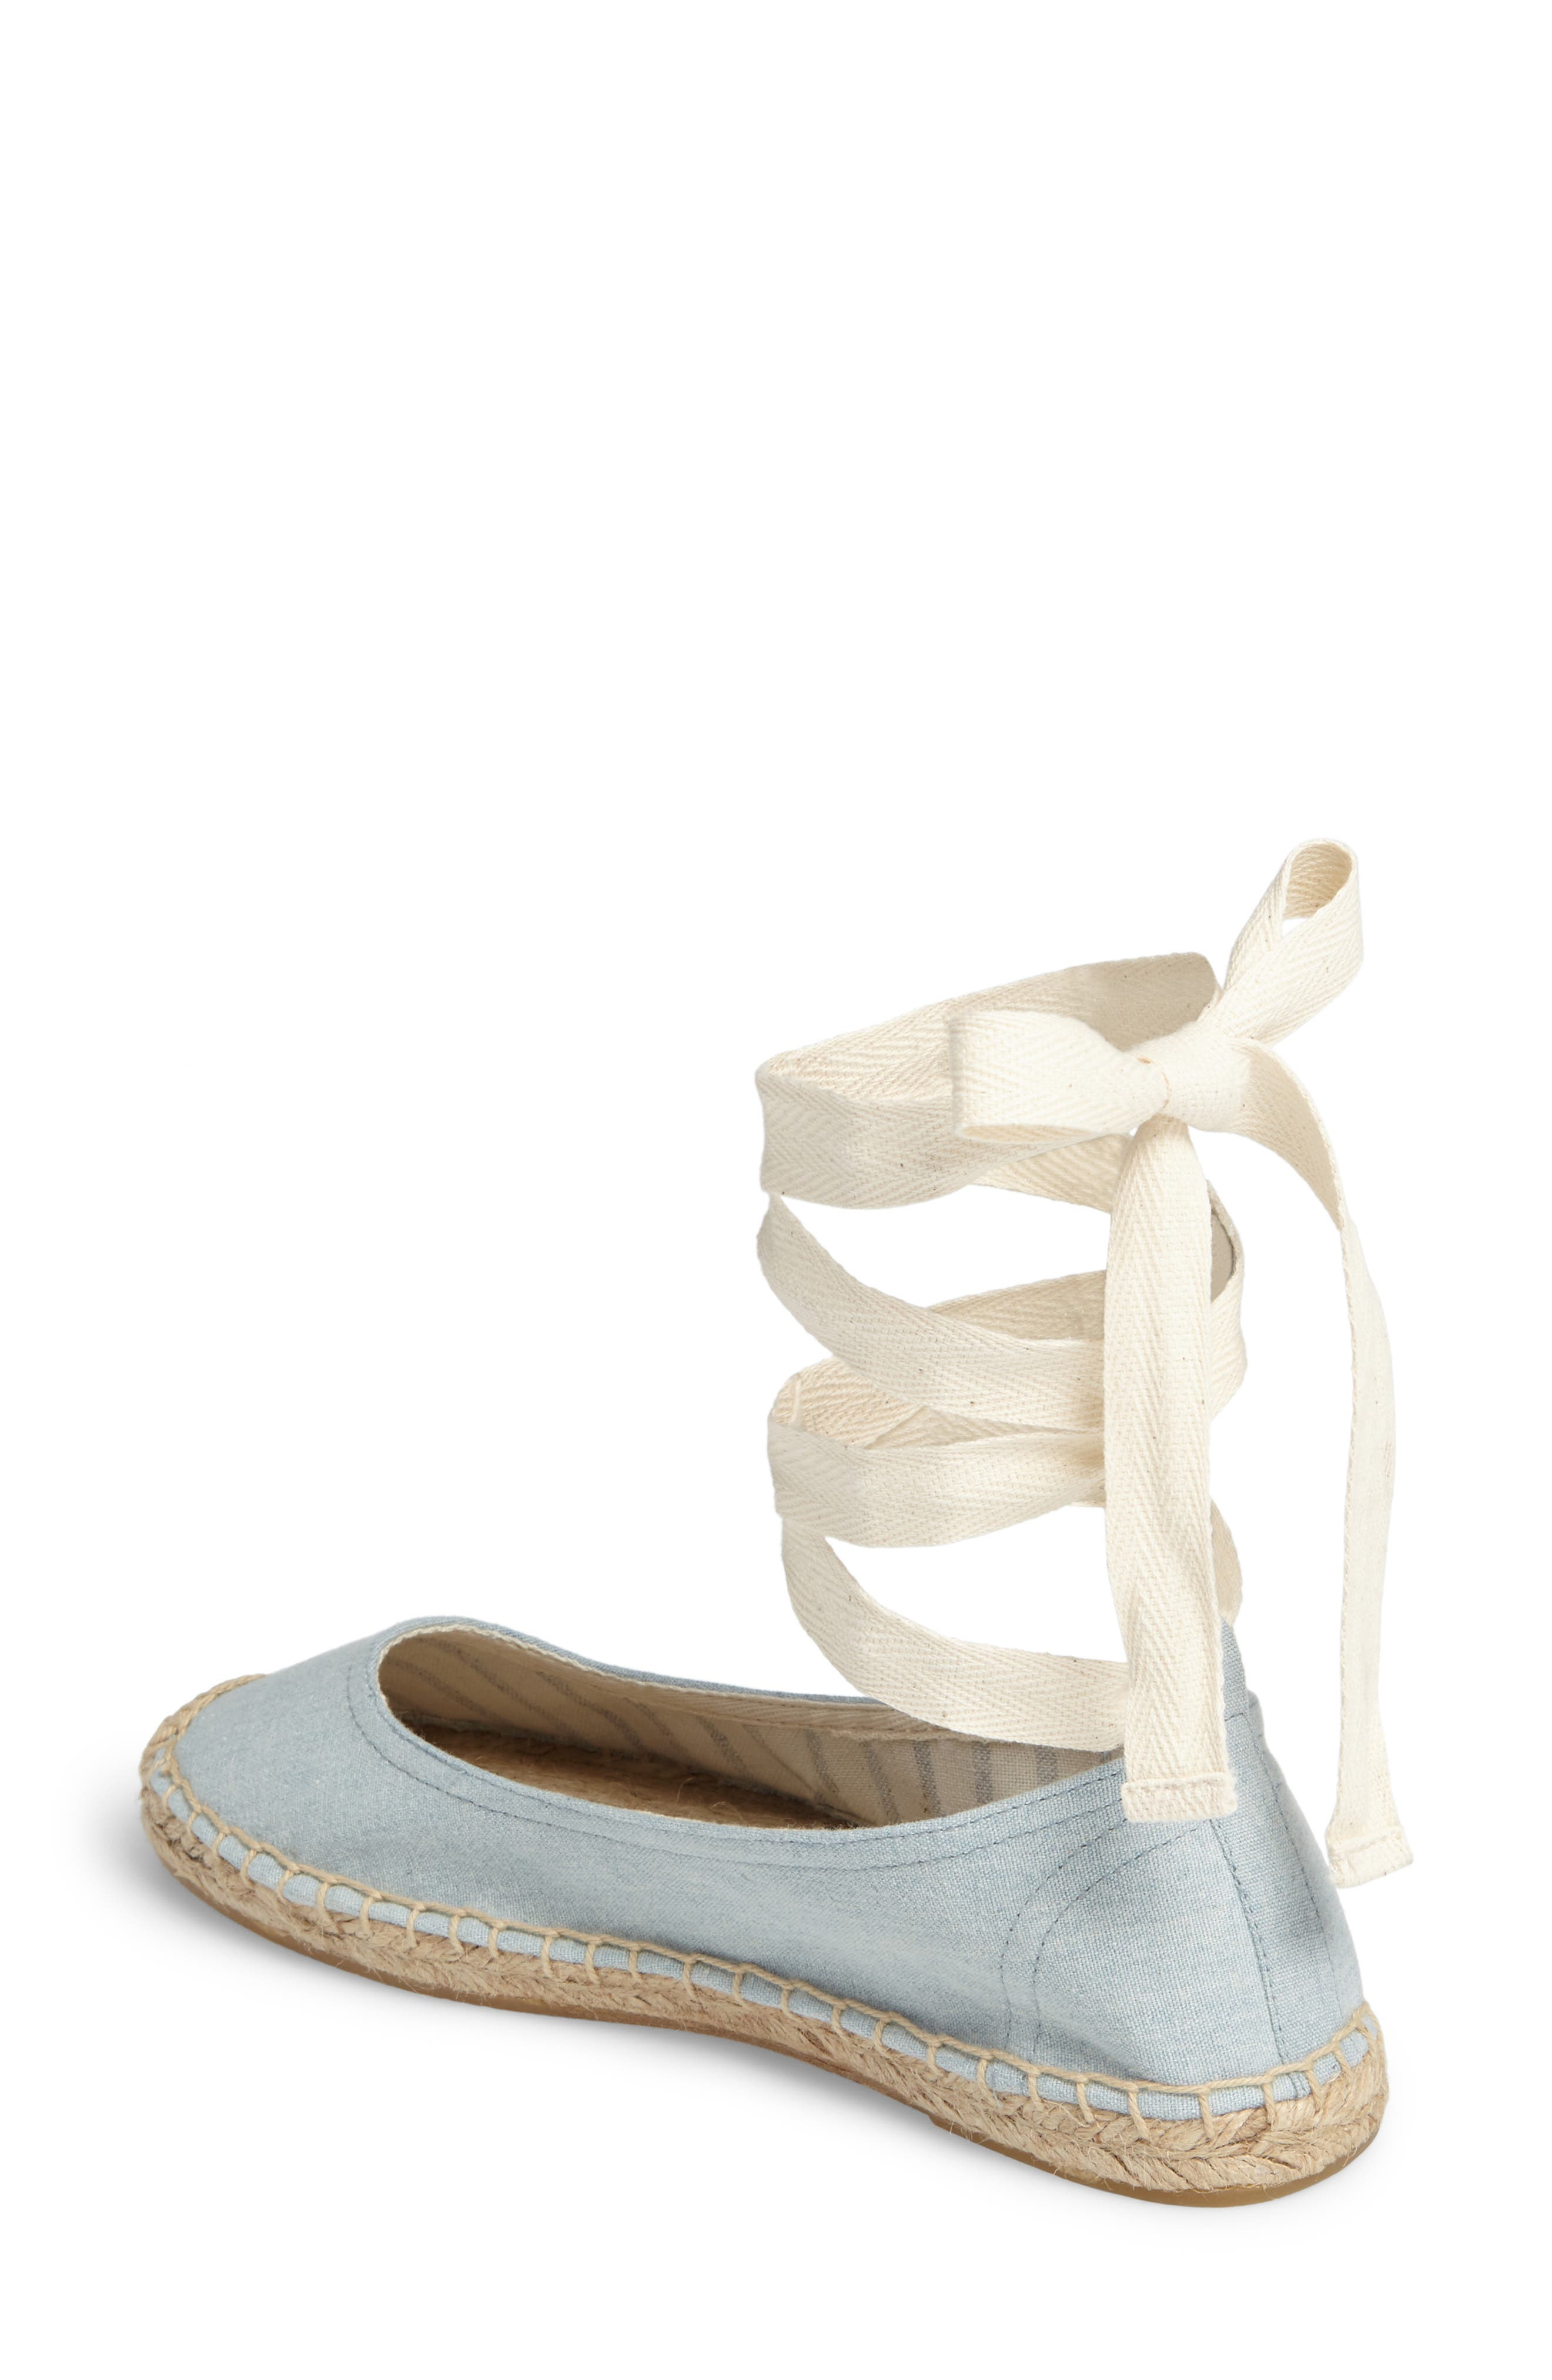 Alternate Image 2  - Soludos Ankle Tie Espadrille Flat (Women)